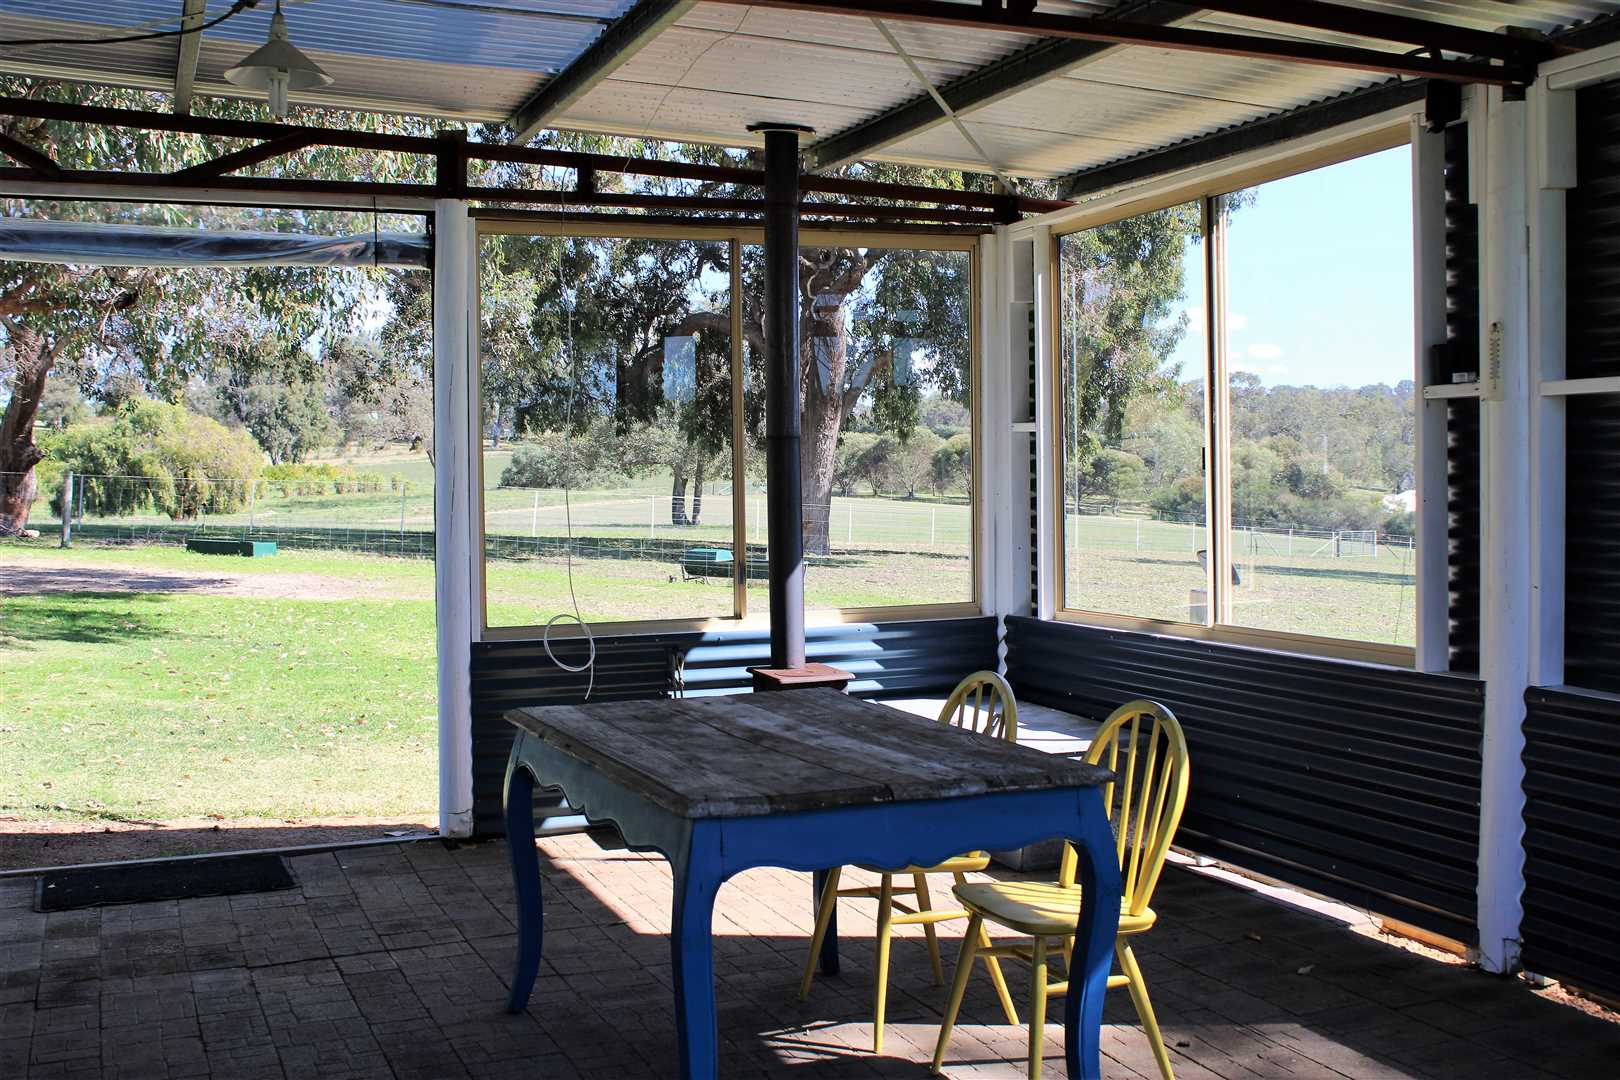 Inside view of the patio area which includes a pot belly stove.